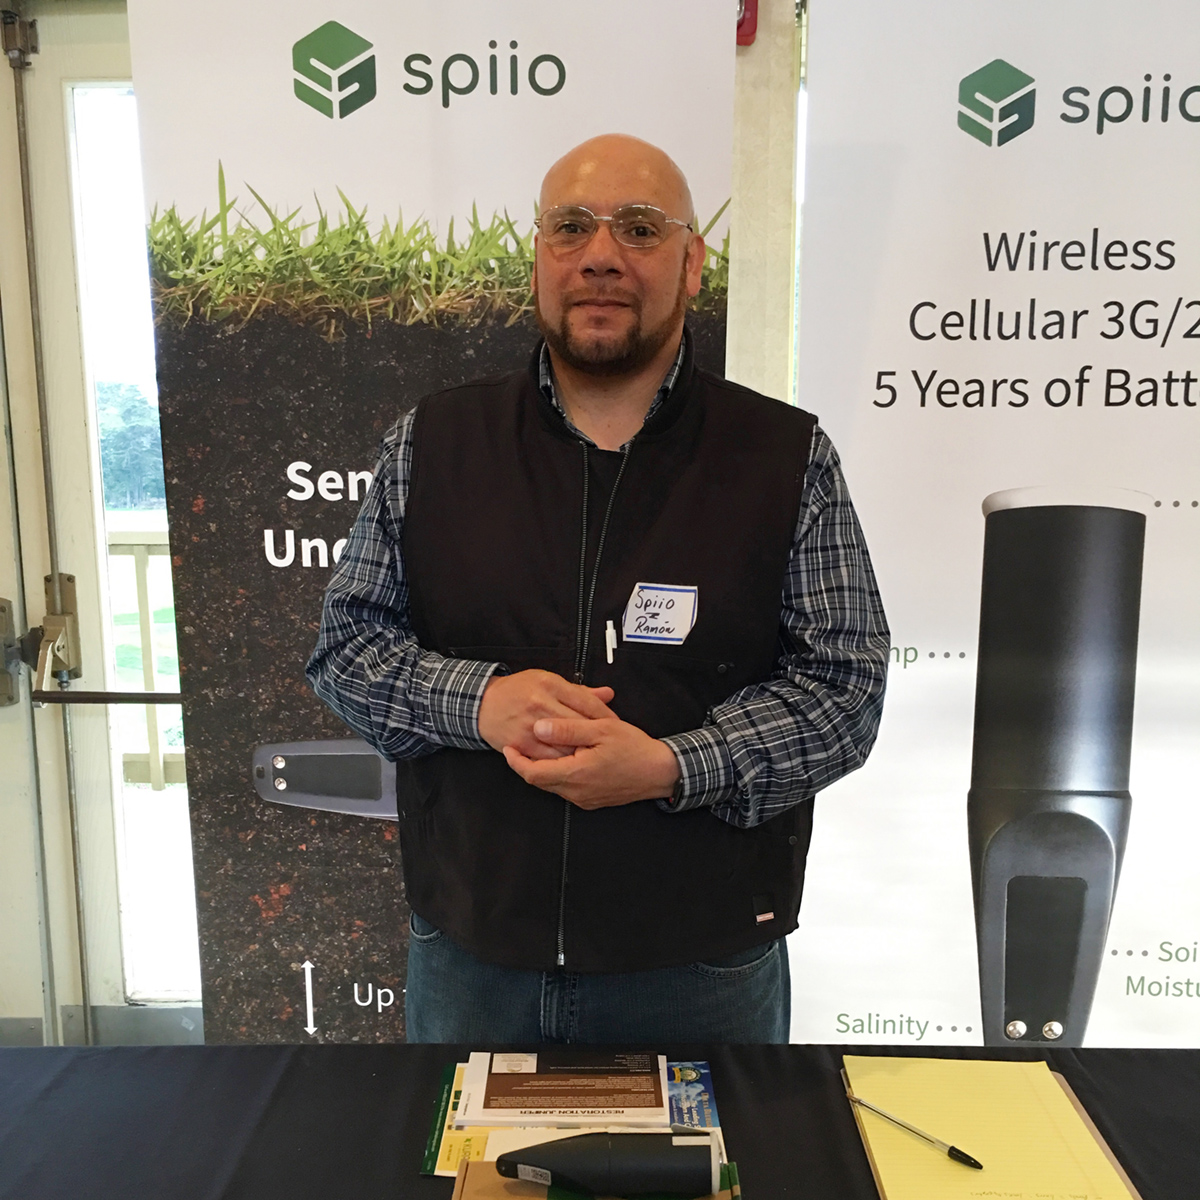 Ramon Rodriguez for Spiio, ready to talk about their Irrigation System with wireless moisture sensors